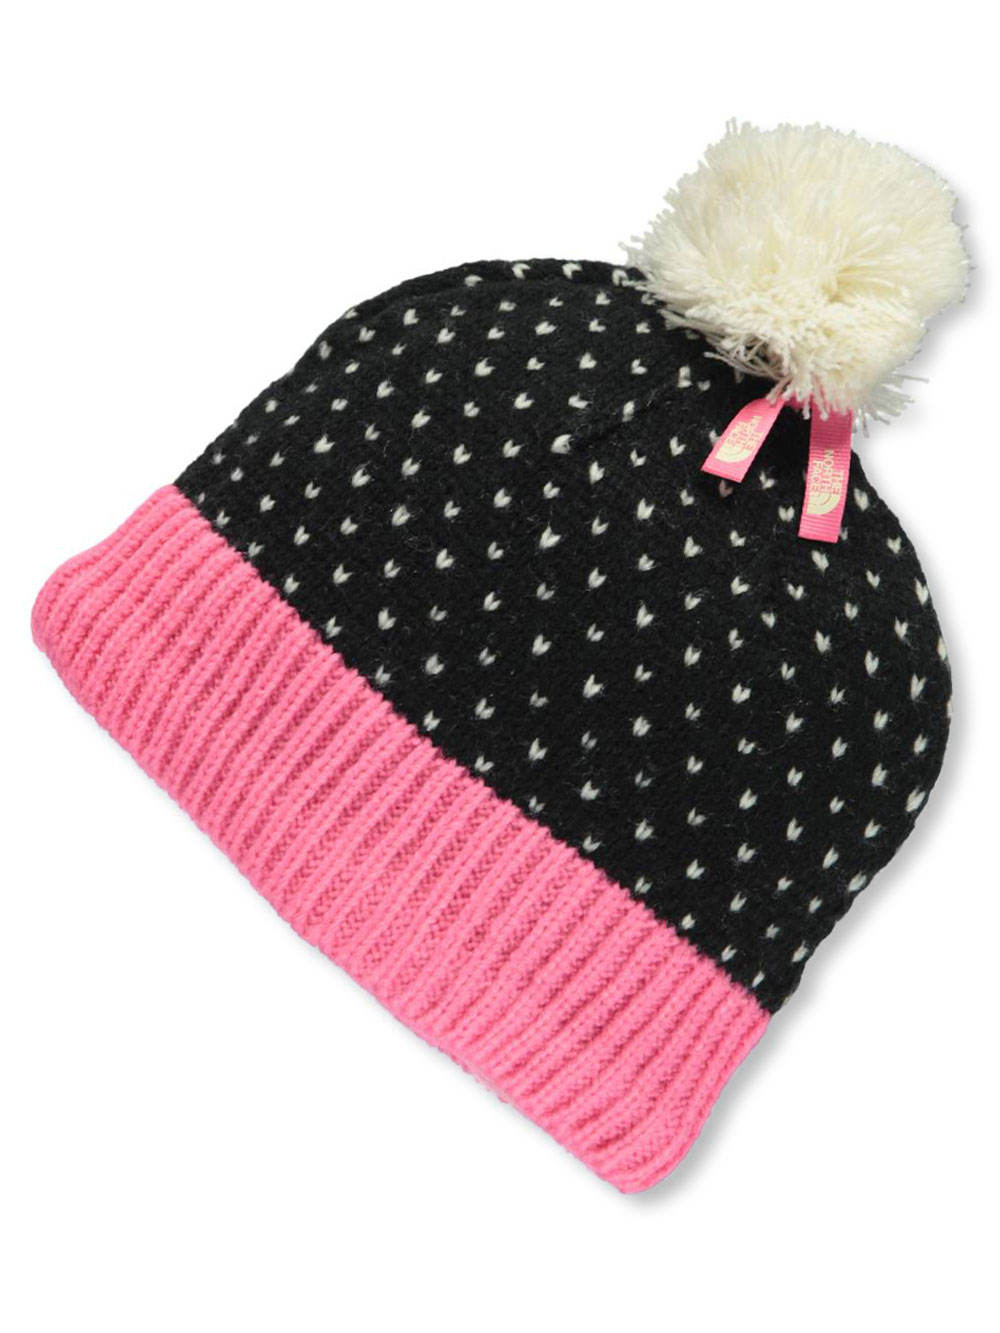 Toddler and Youth Beanie